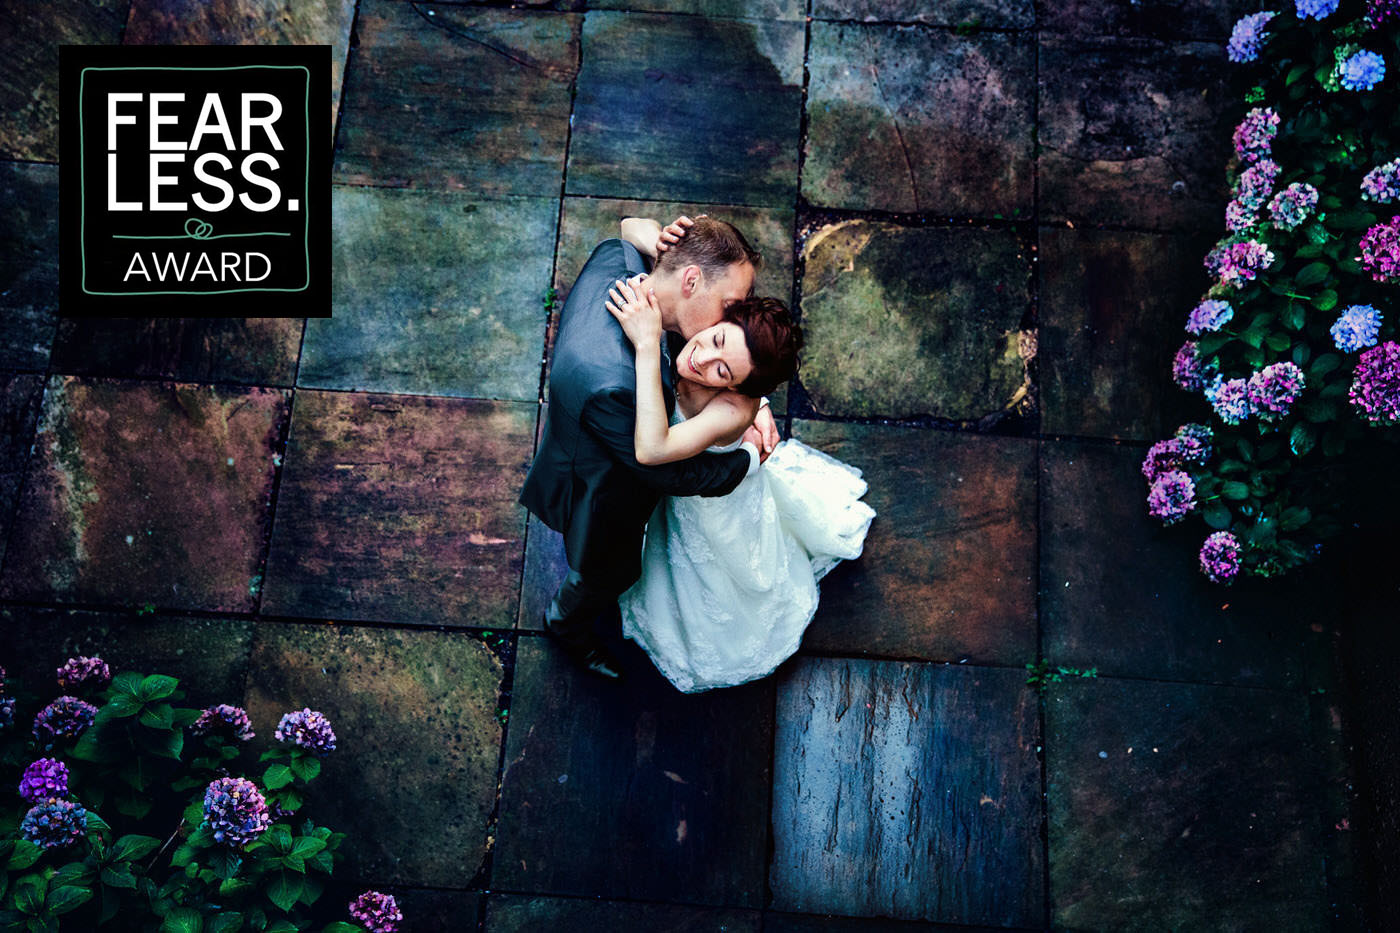 award-winning-wedding-photos-ispwp-fearless-16